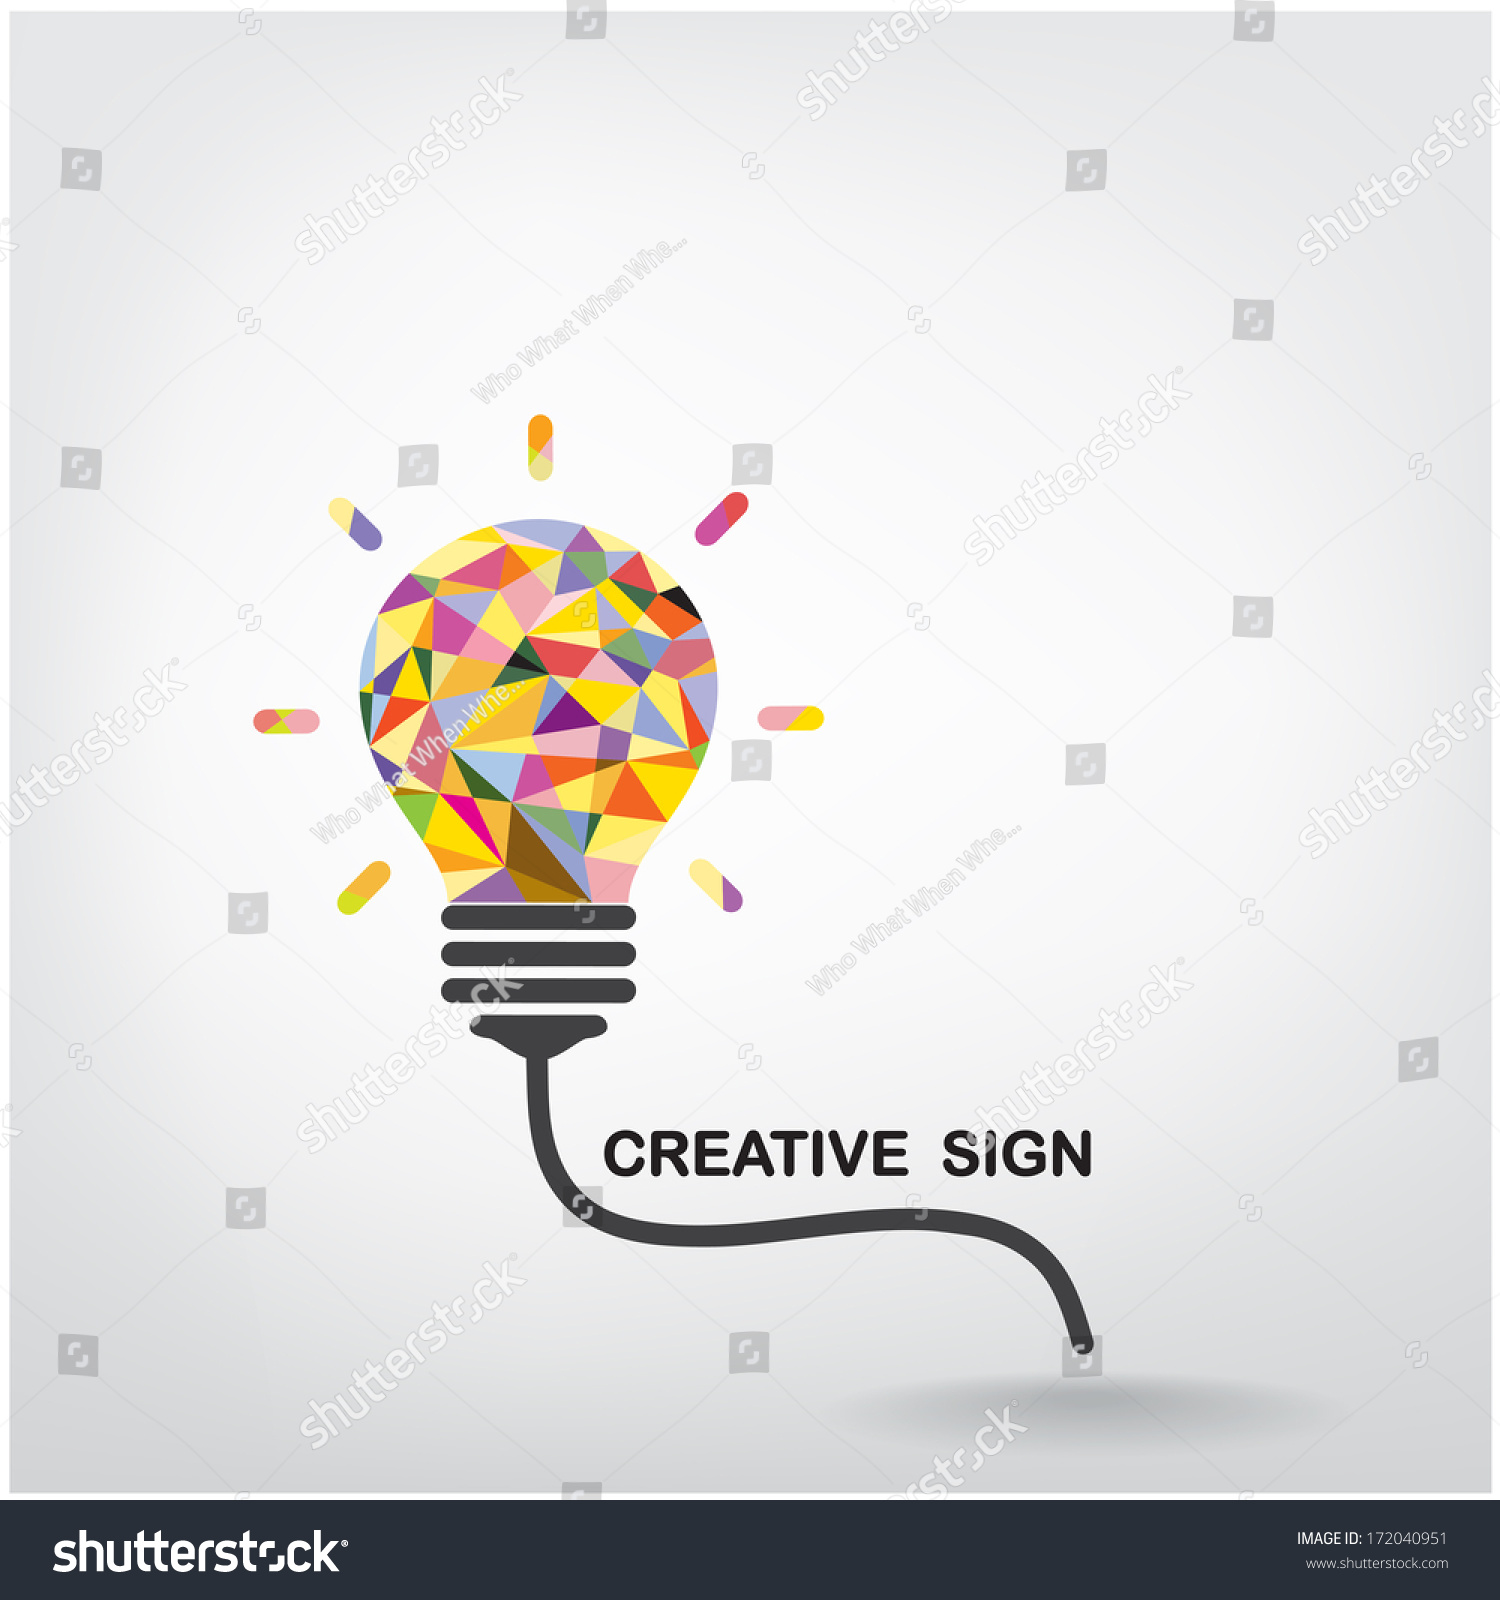 Creative Light Bulb Idea Concept Background Stock Vector ...